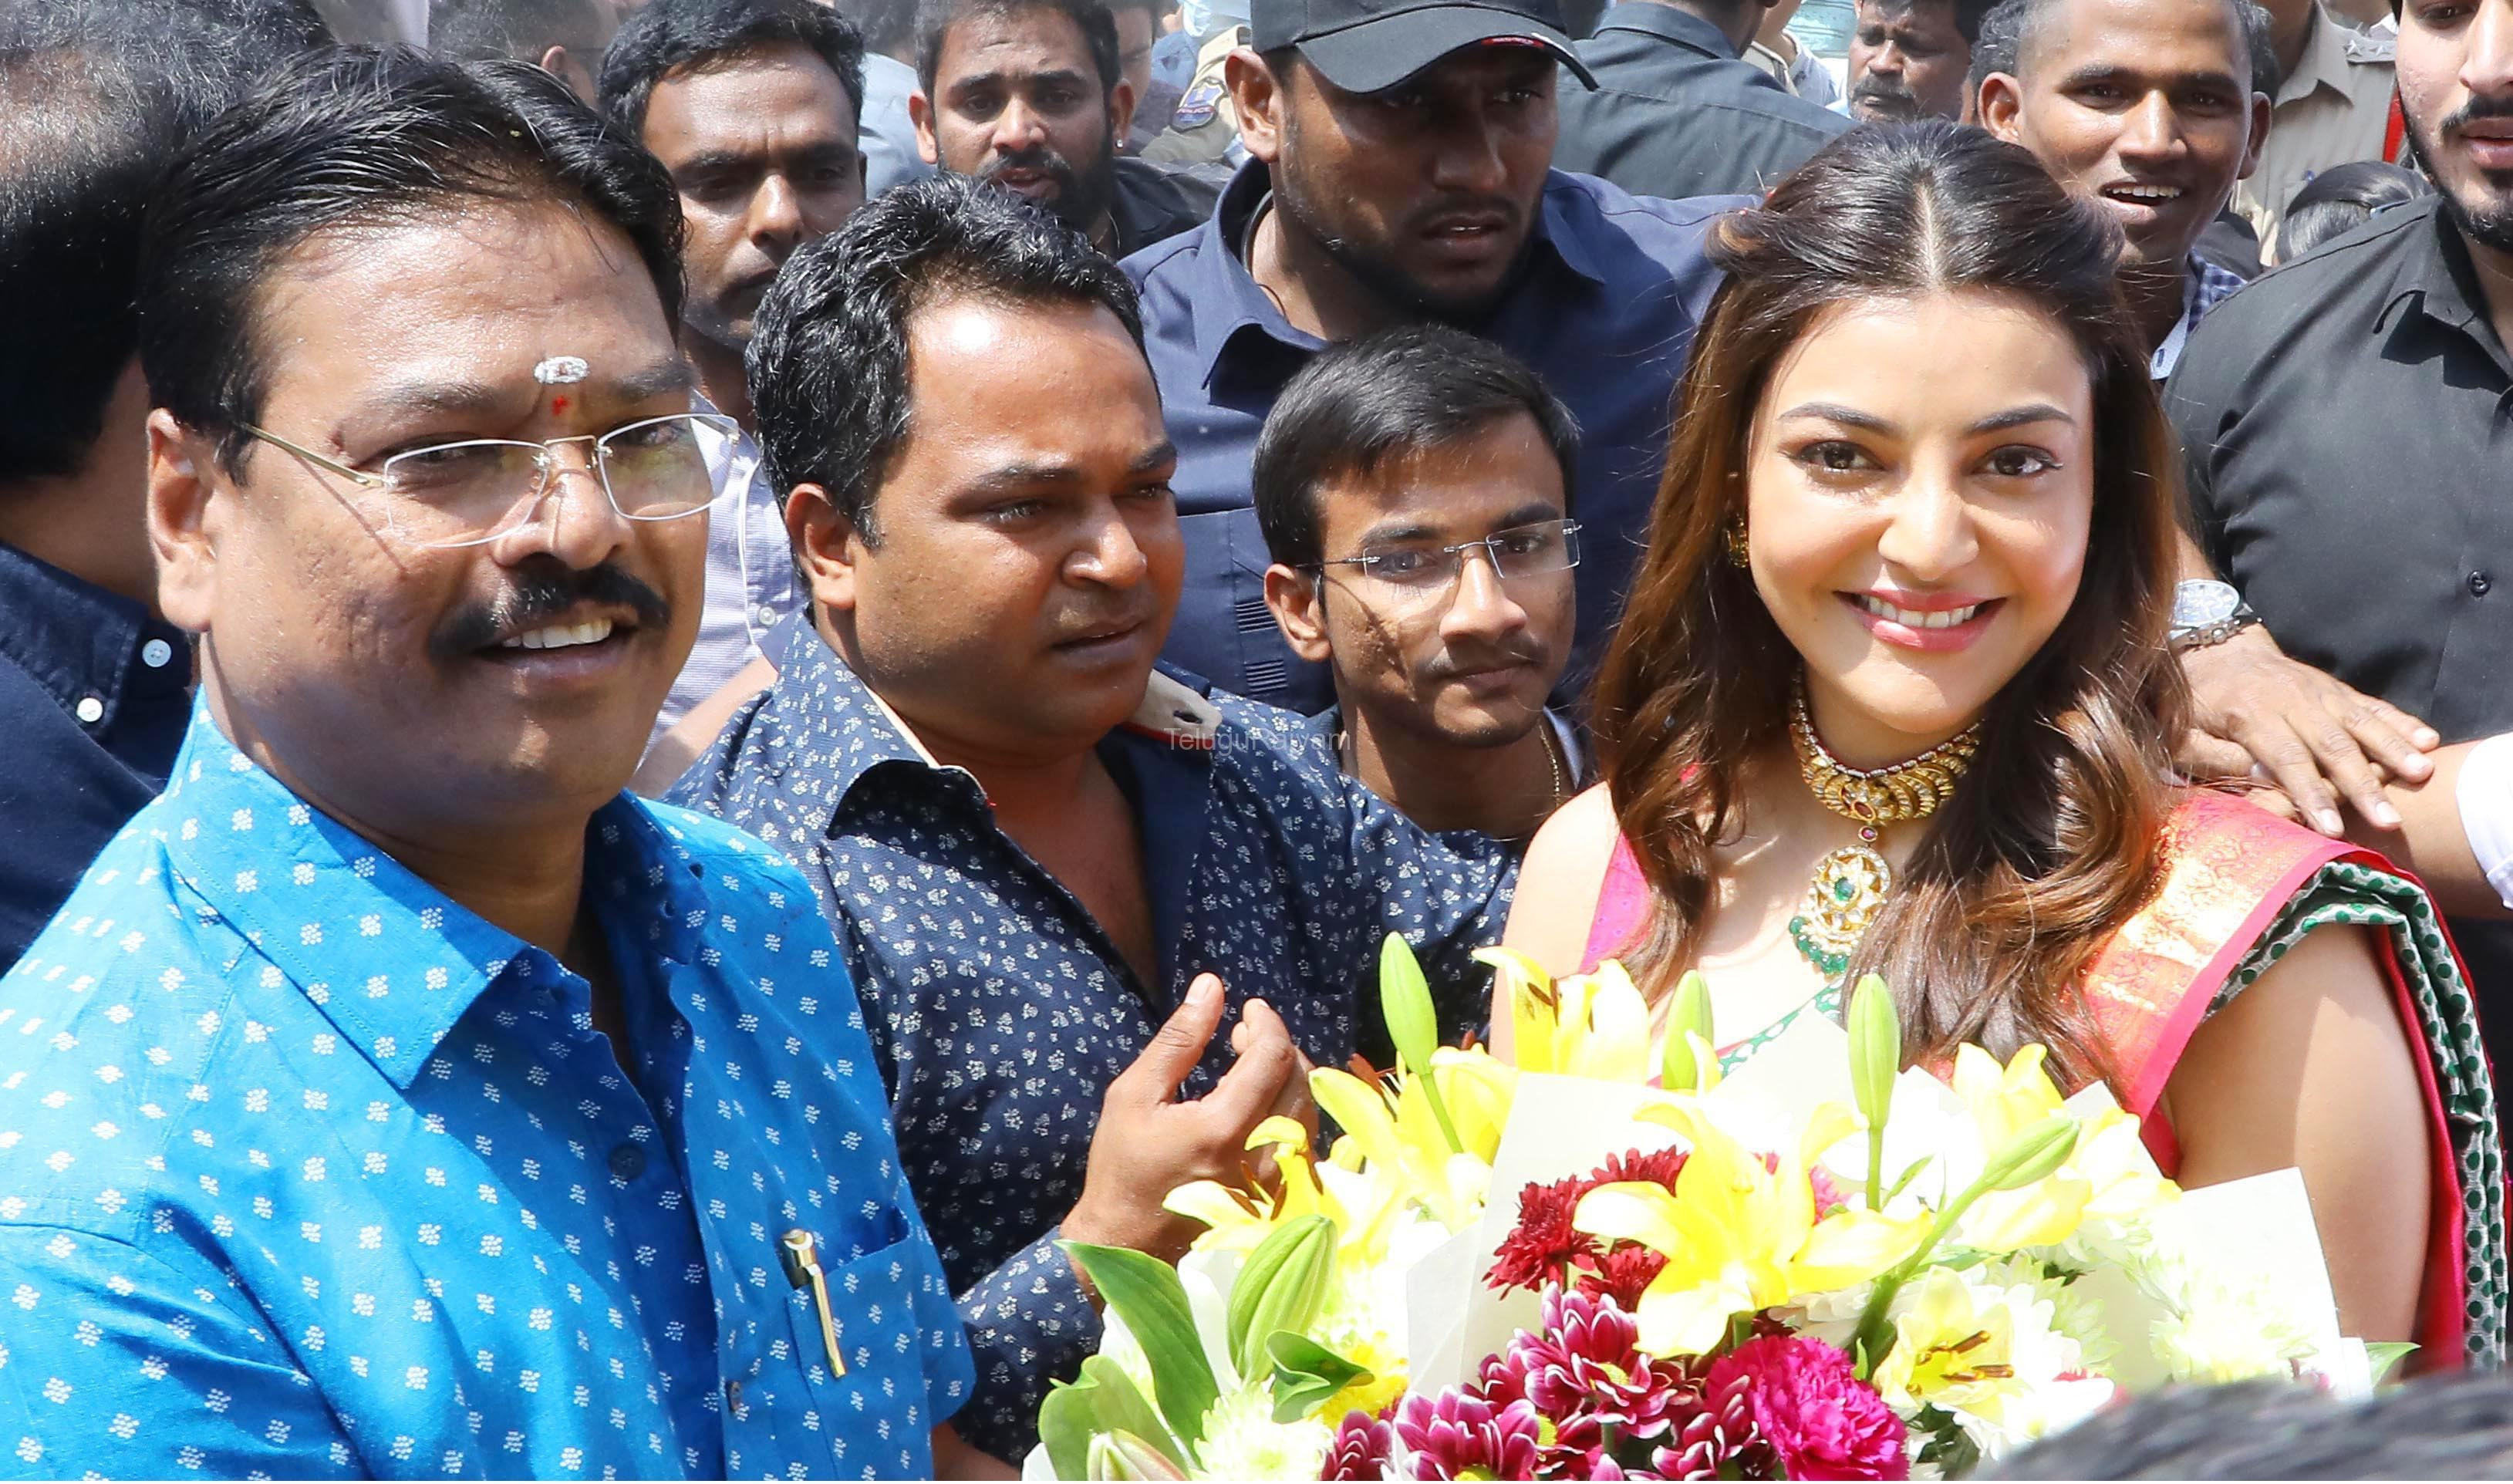 Mr Kasam Namashivaya, Chairman; presenting a bouquet to Star Actress Kajal Agarwal, at the inauguration of the 5th Maangalya Shopping Mall in Hyderabad at Chintal, today.